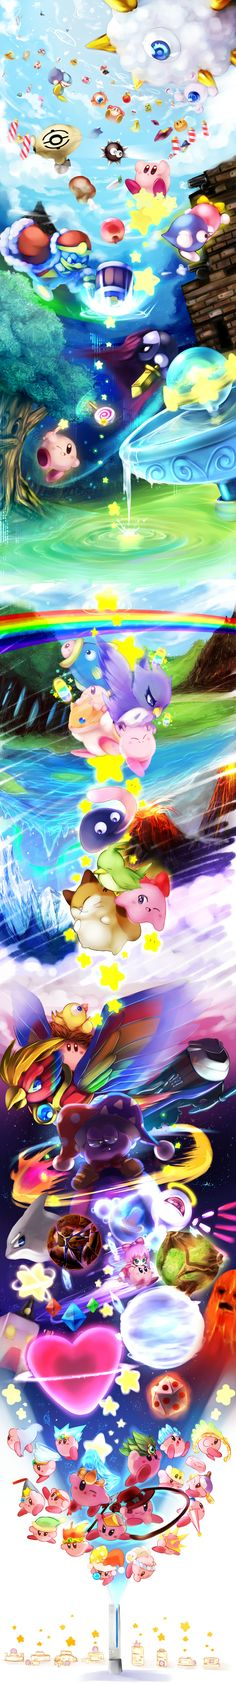 KIRBY!!!!! Love that little pink guy!